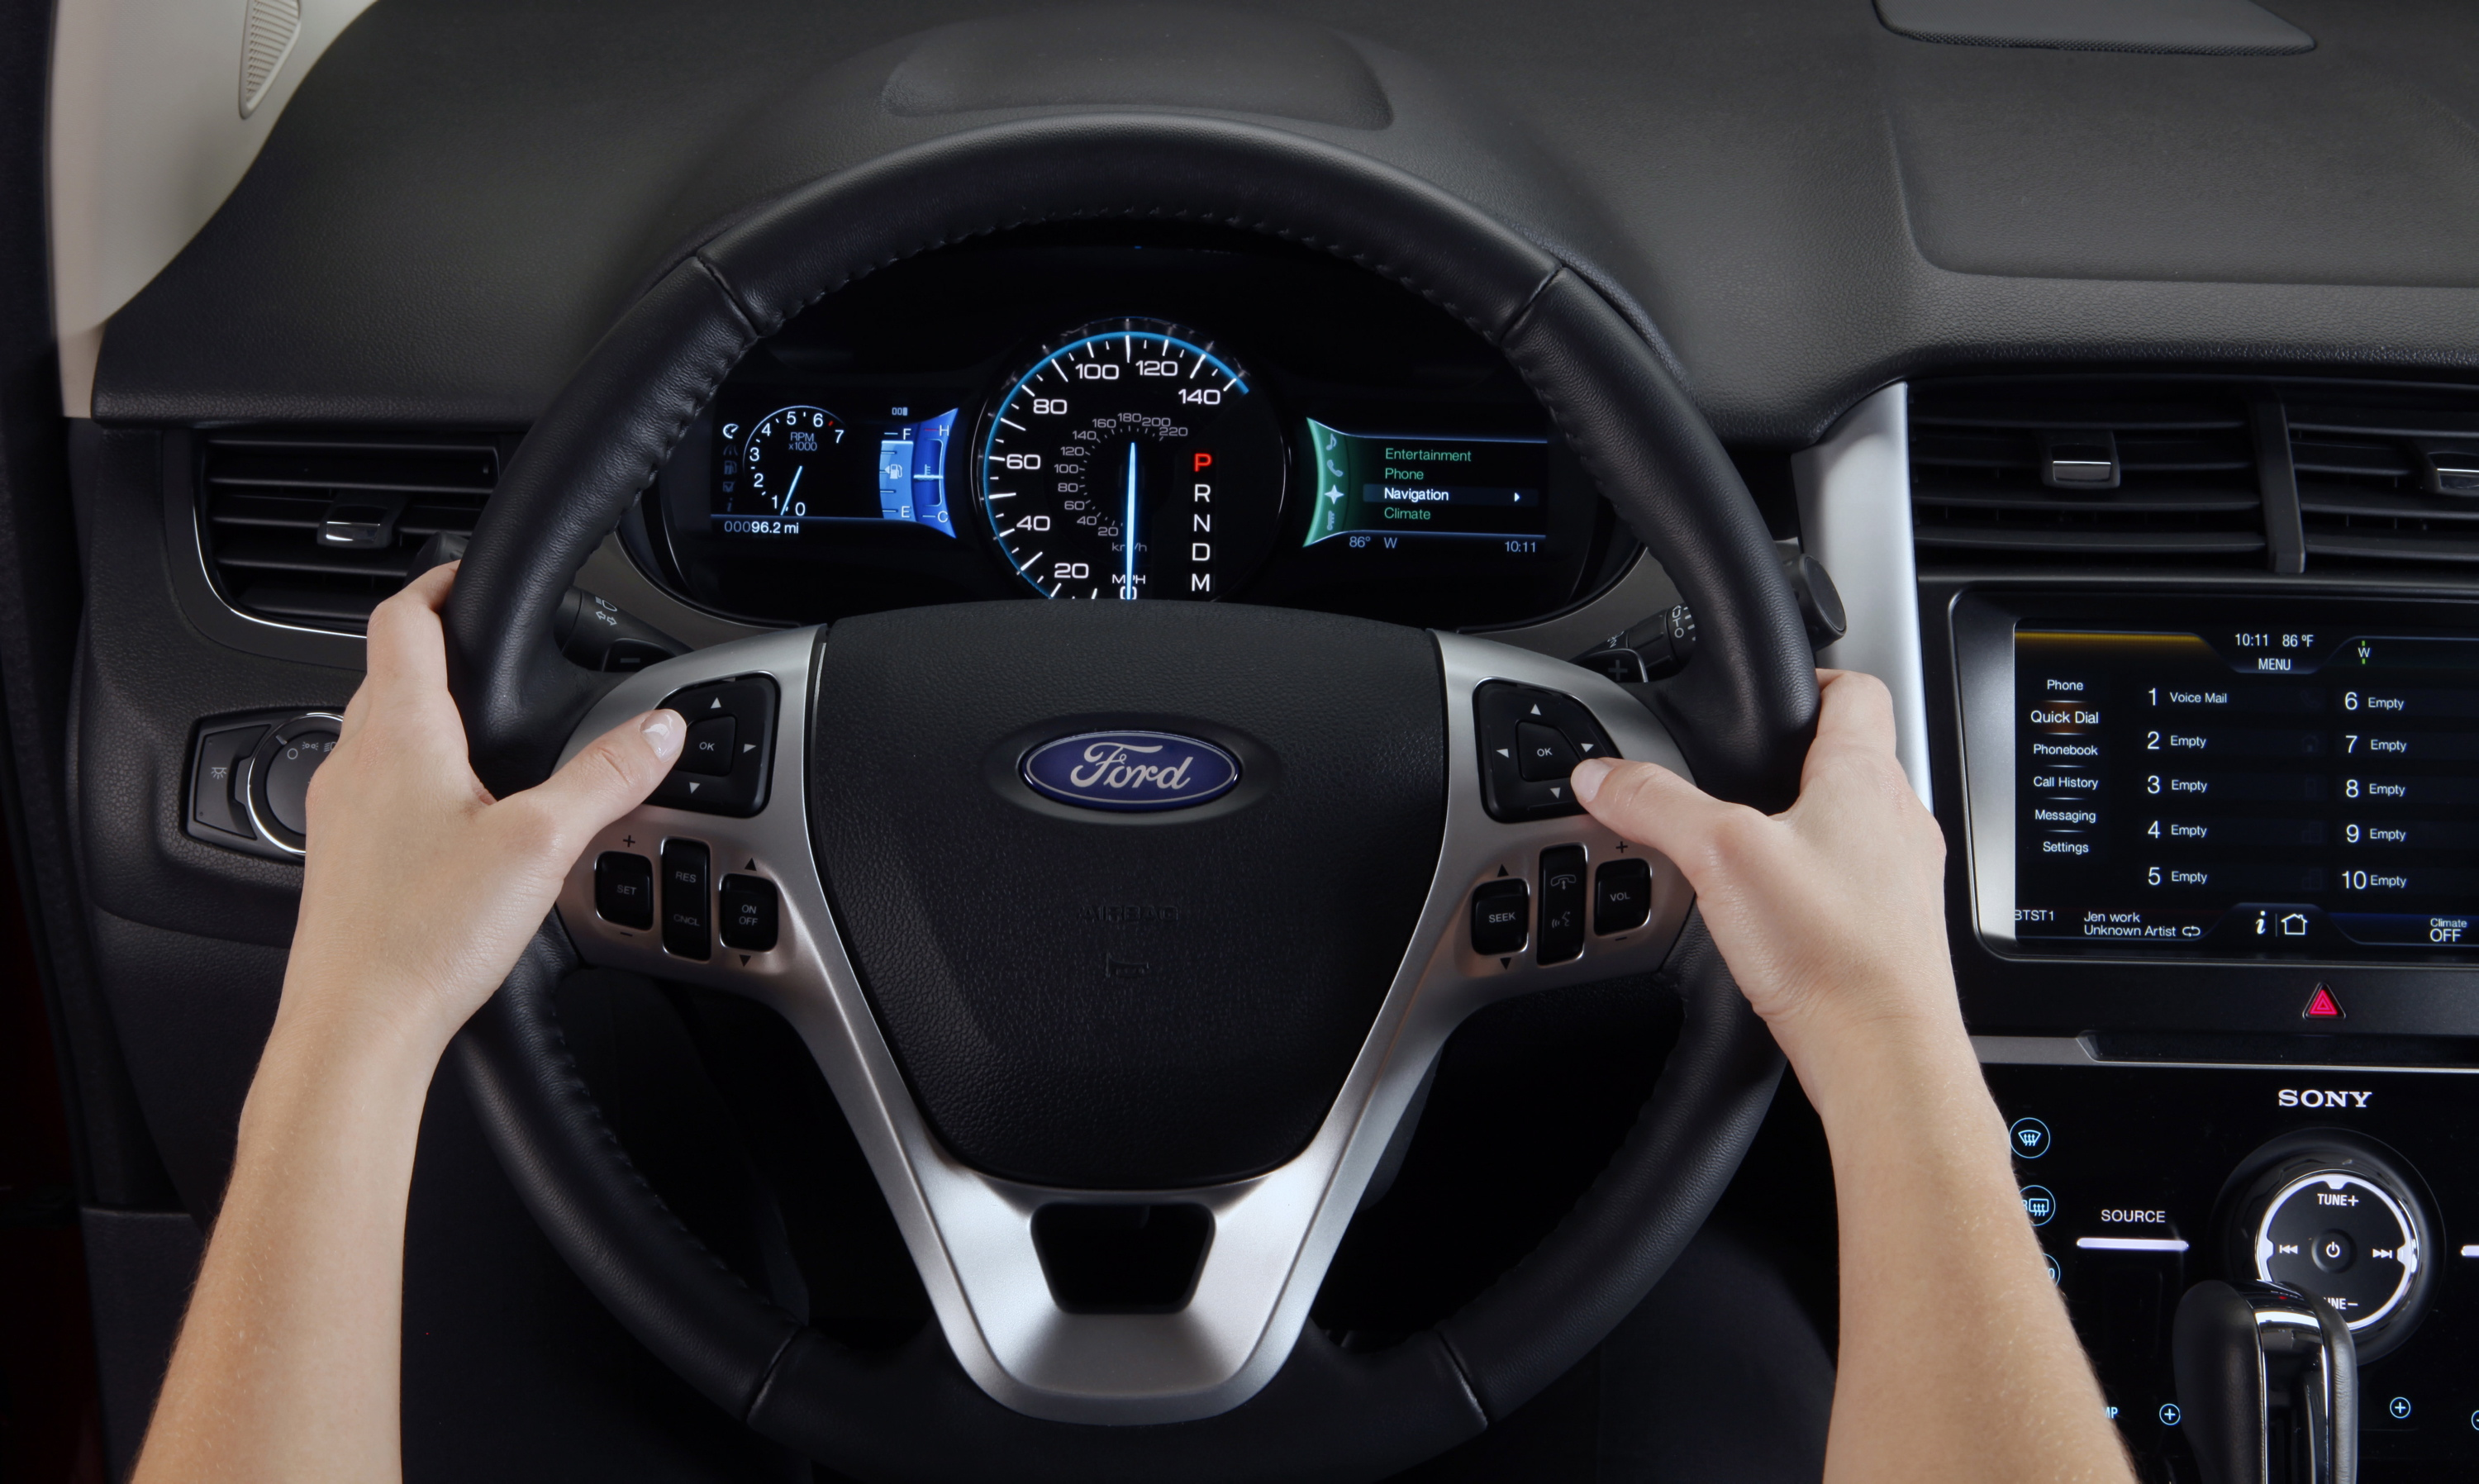 & Car Tech: My Ford Touch. Valuable tool or distraction? markmcfarlin.com